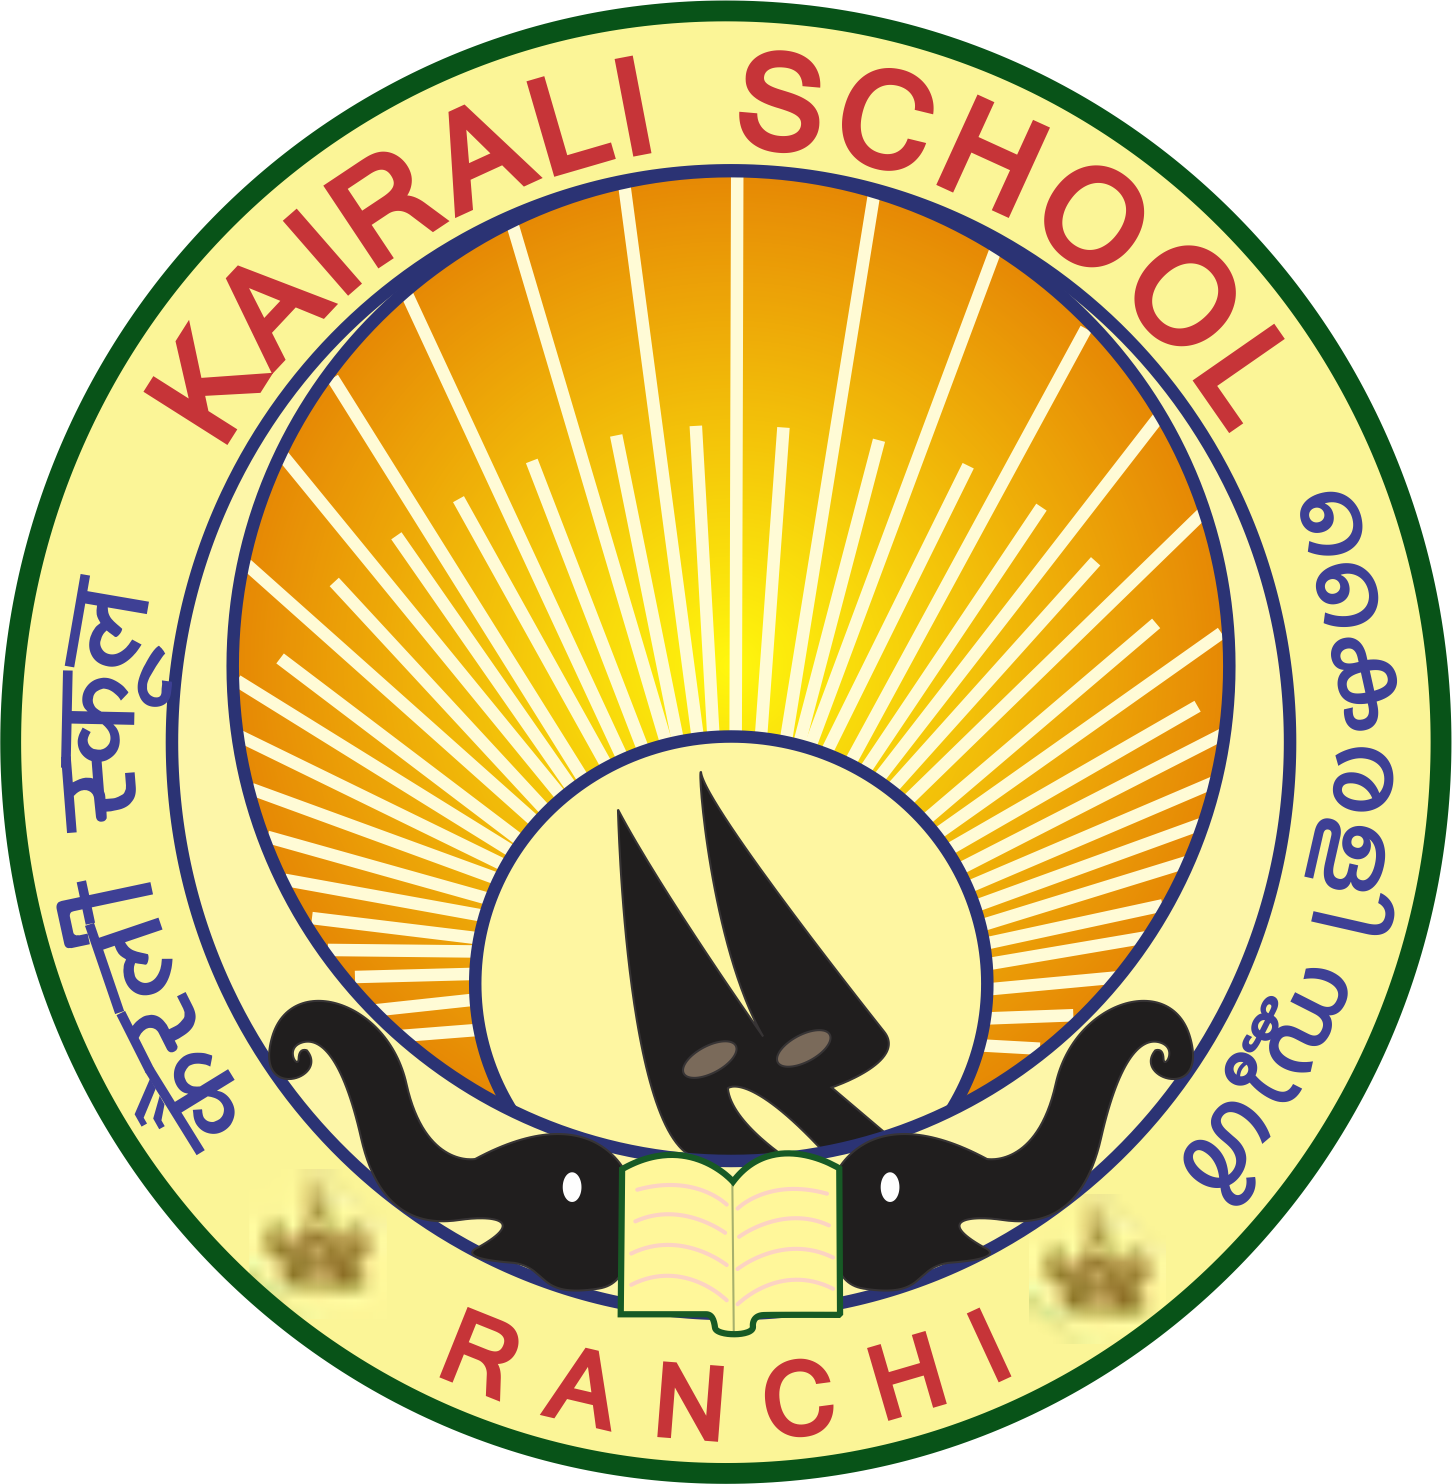 Kairali School Ranchi